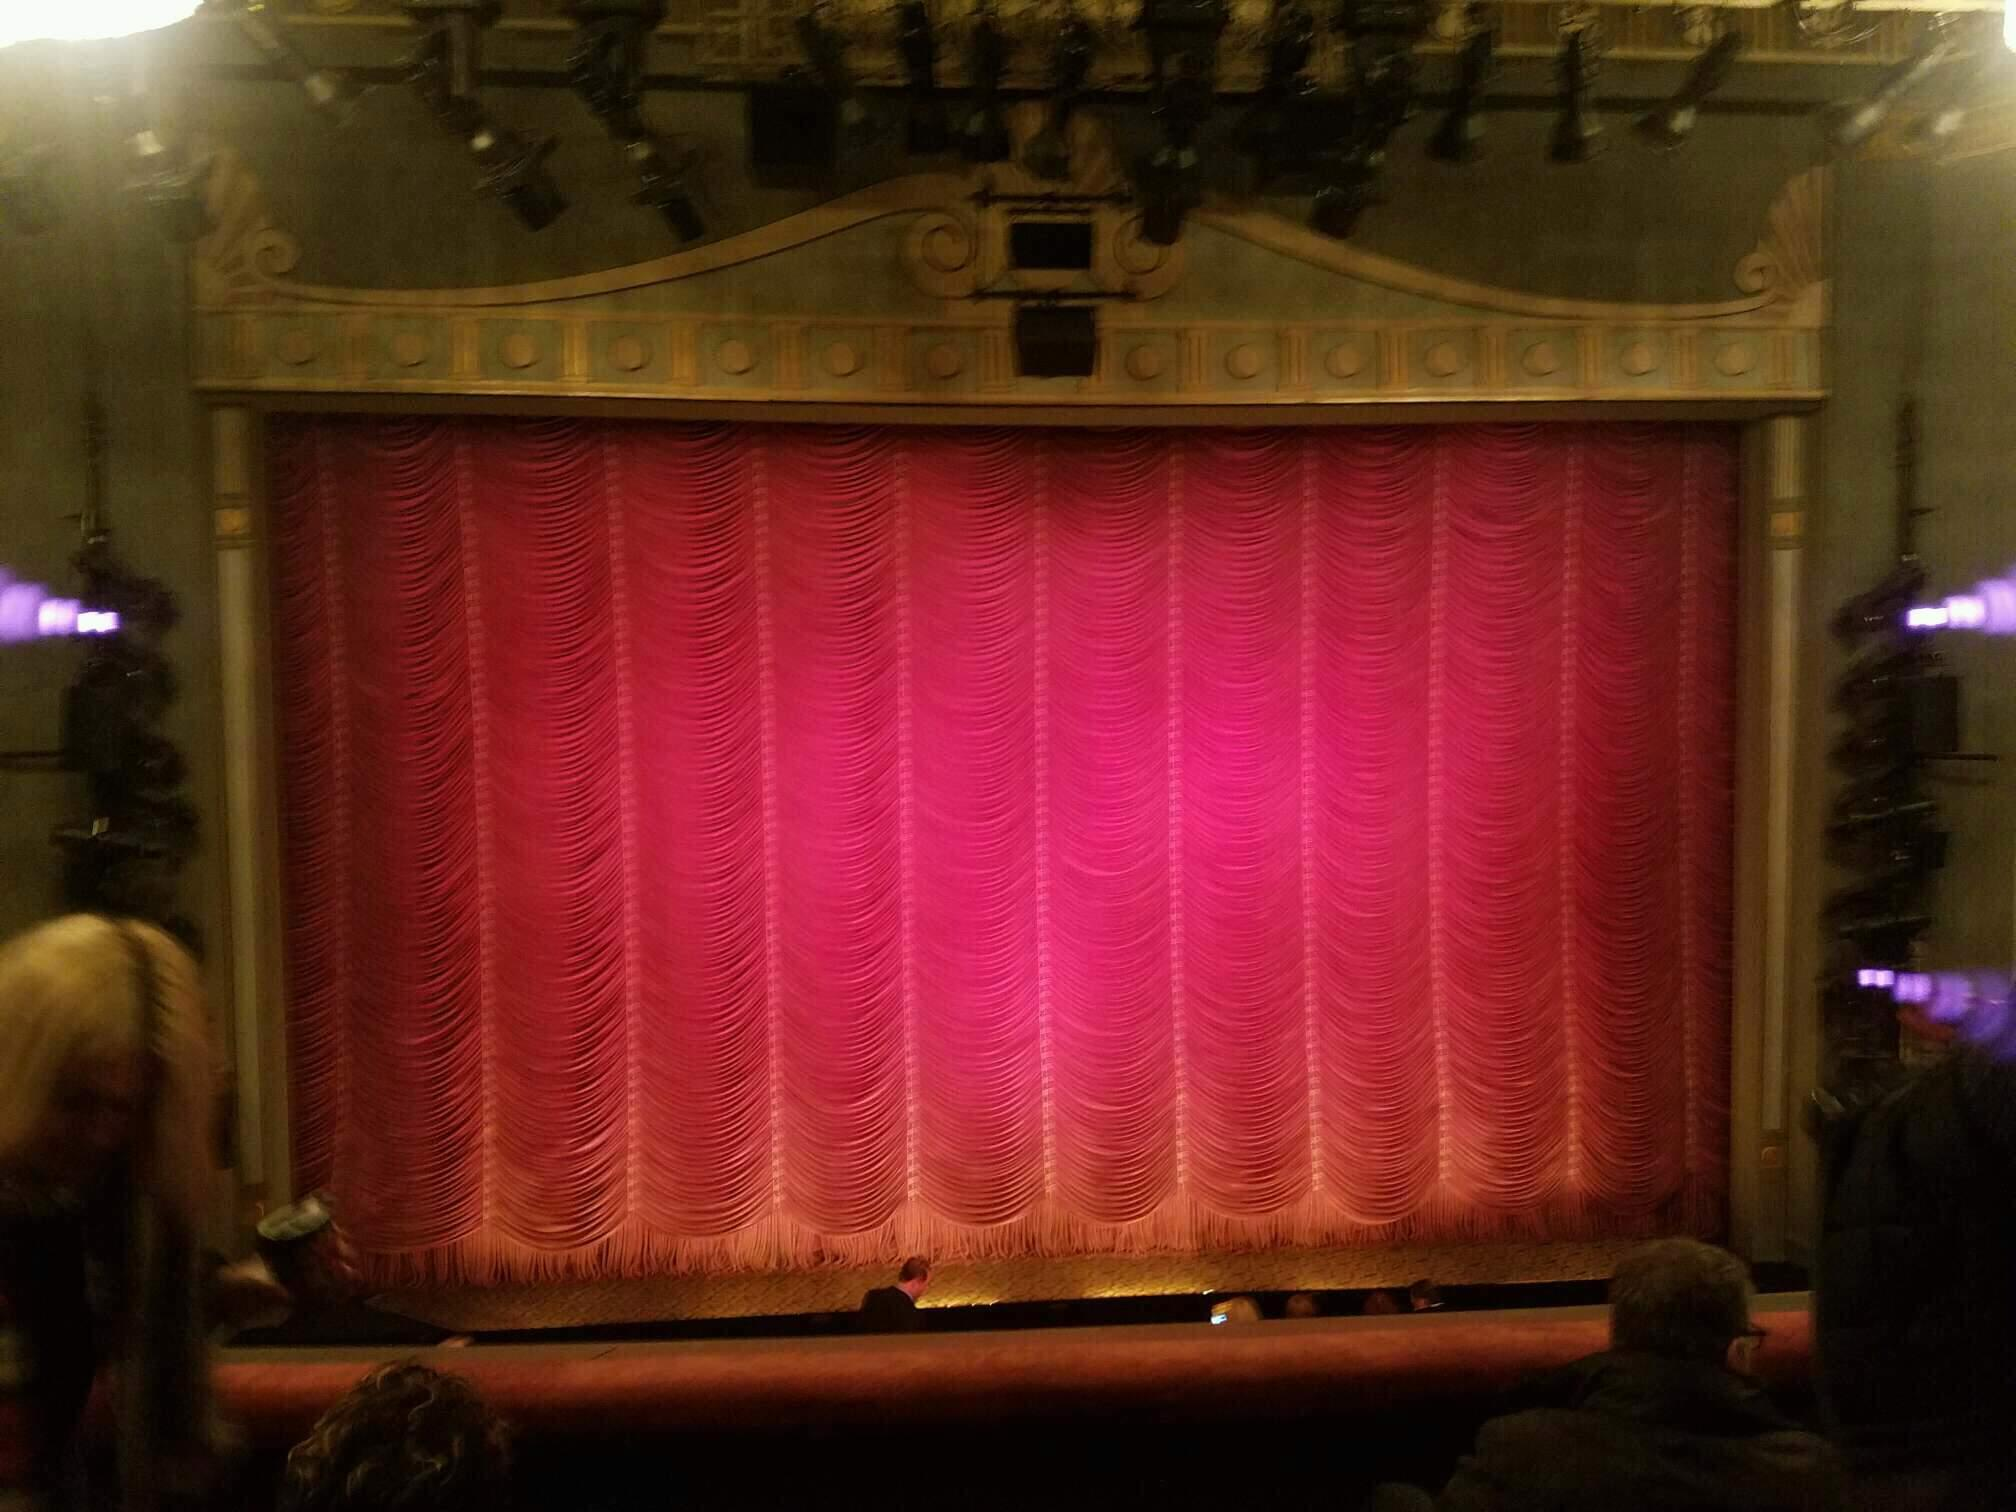 Broadhurst Theatre Section mezz cent Row 4 Seat 105